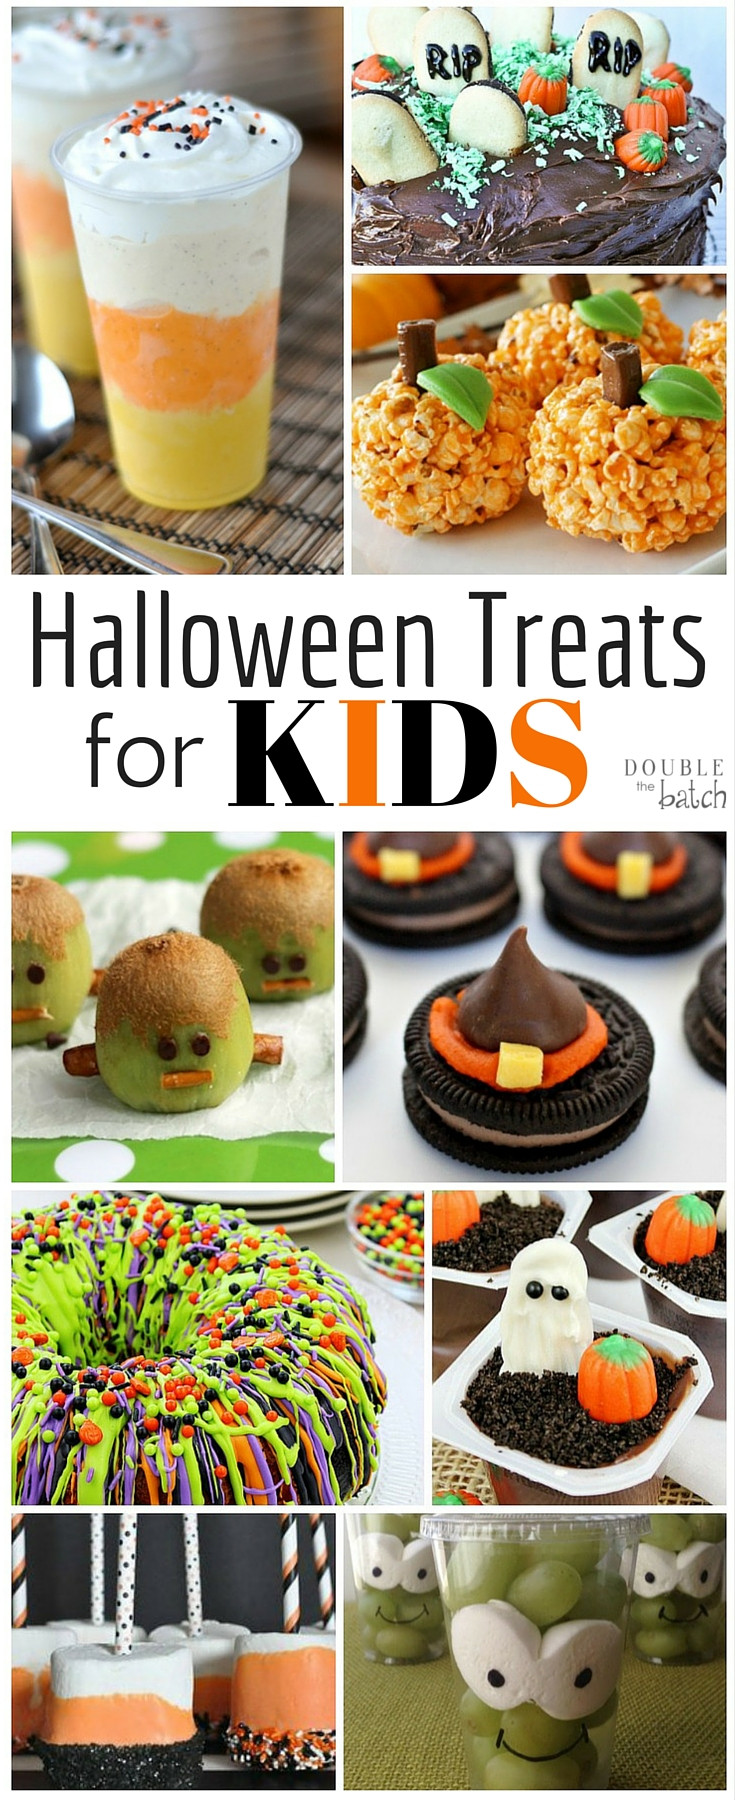 Fall Desserts For Kids  Fun Halloween Treats for Kids Double the Batch